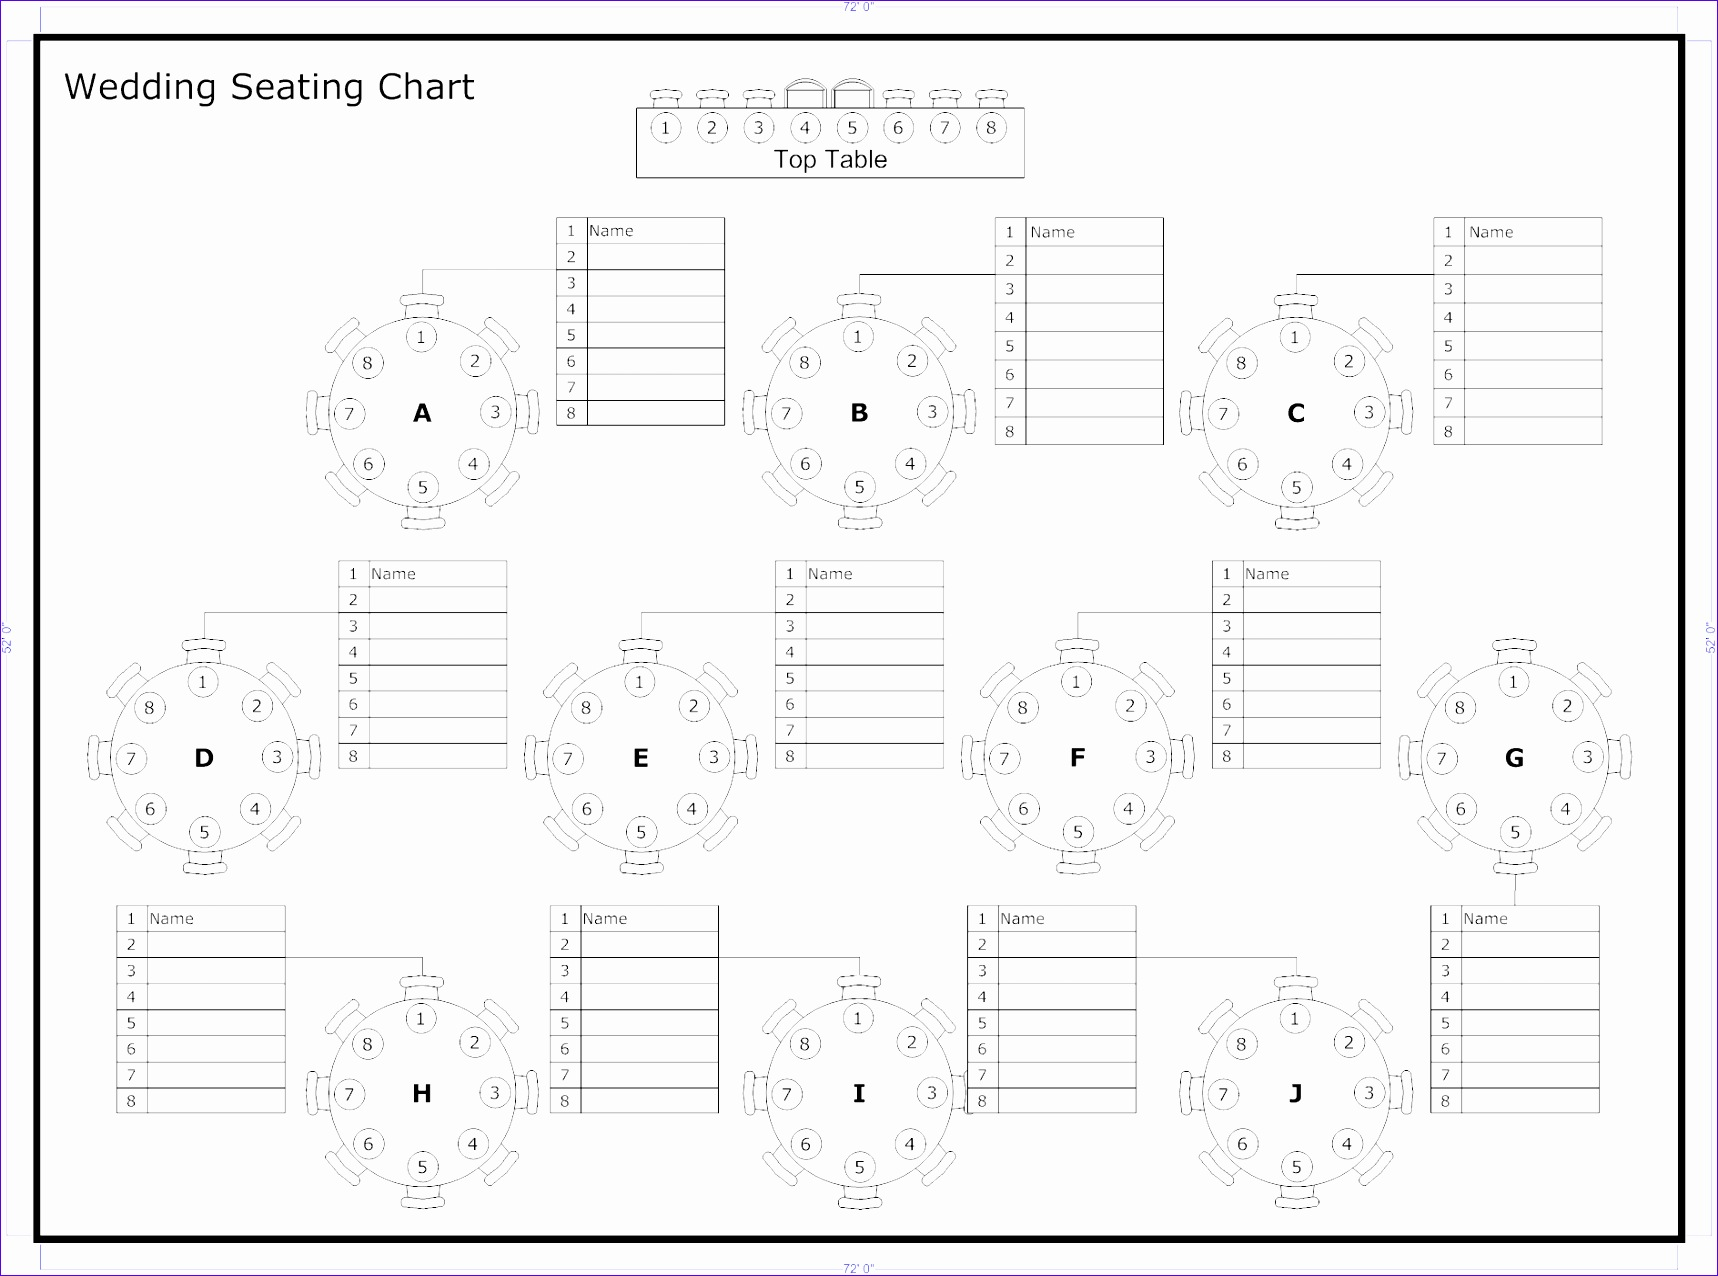 tips to seat your wedding guests receptions wedding reception throughout wedding seating chart template excel